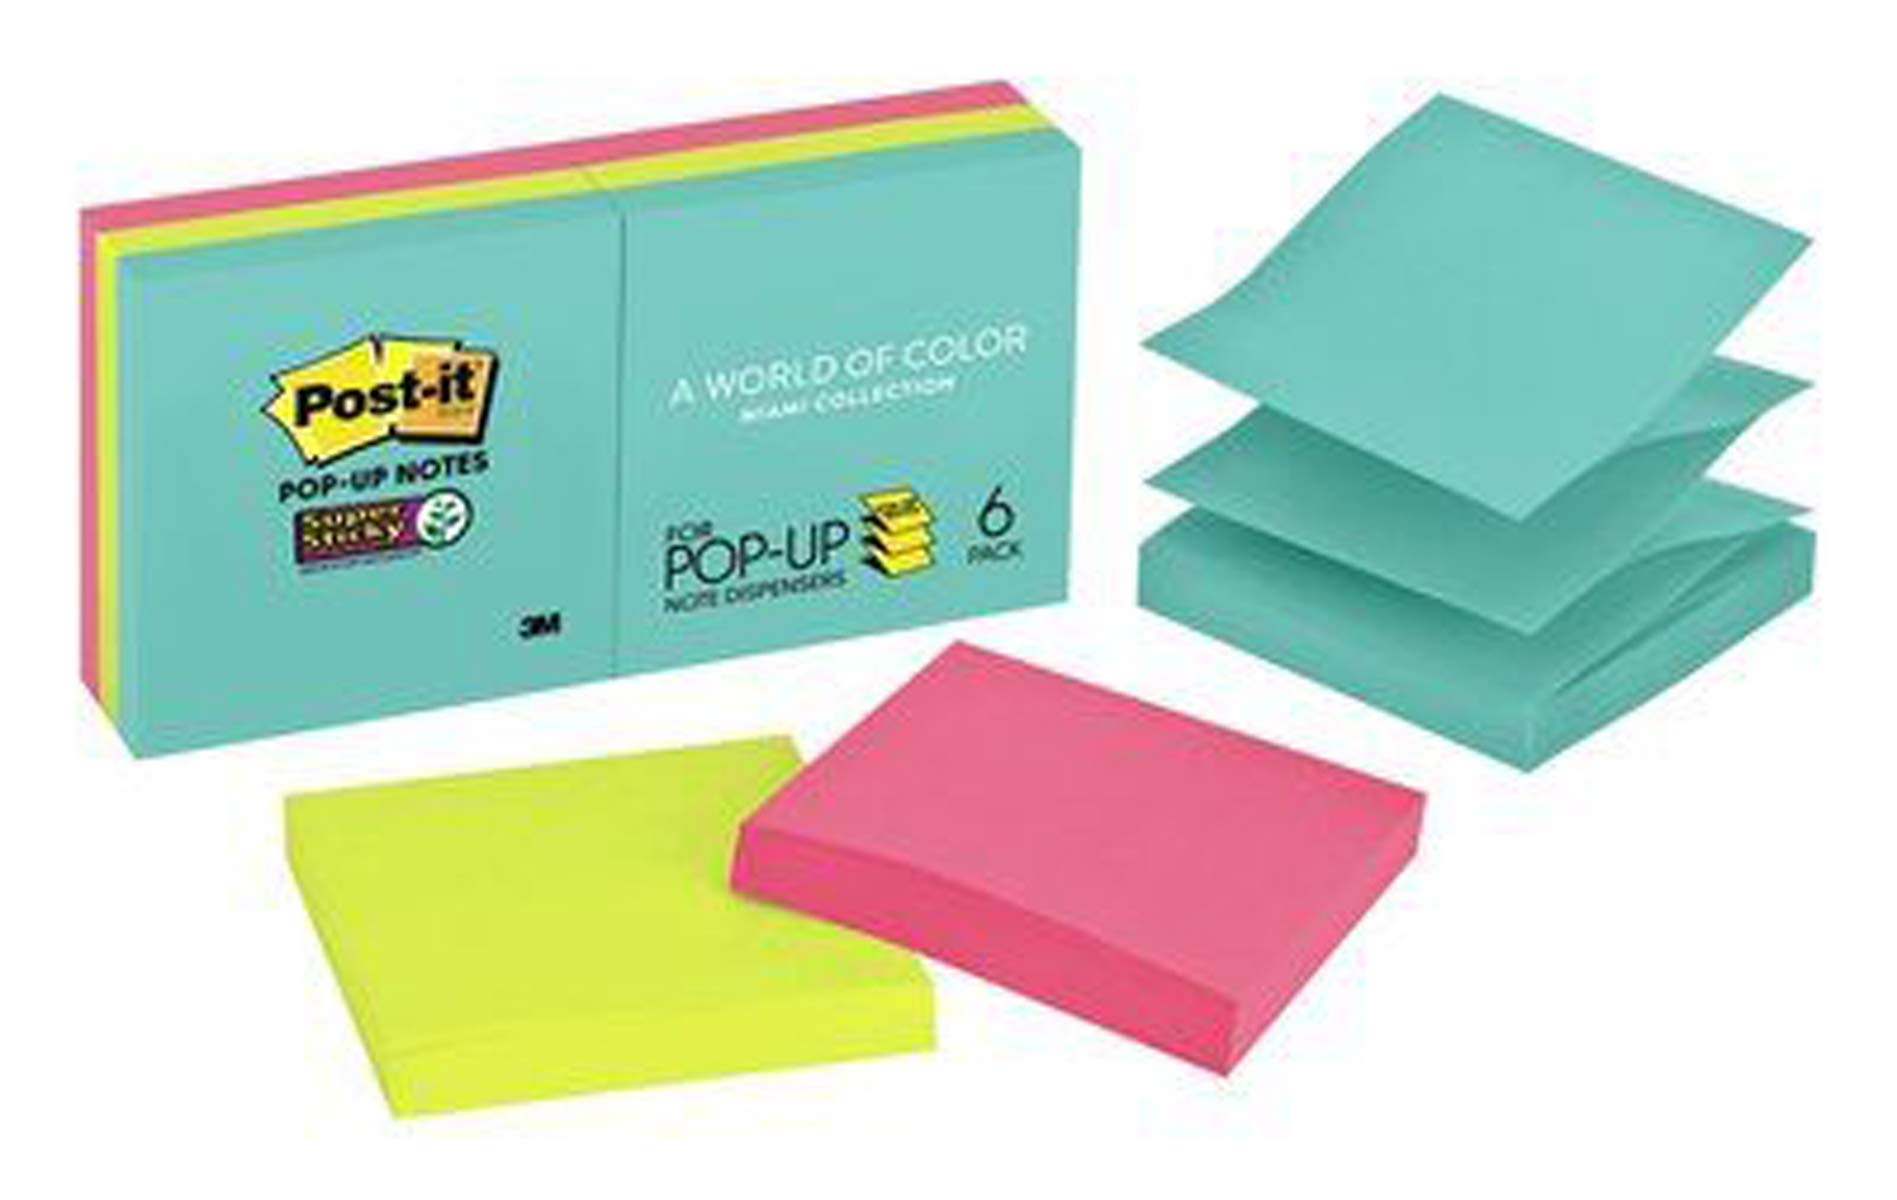 Post-it Super Sticky Pop-up Notes, 2x Sticking Power, 3 in x 3 in, Miami Collection, 6 Pads/Pack, 90 Sheets/Pad (R330-6SSMIA)